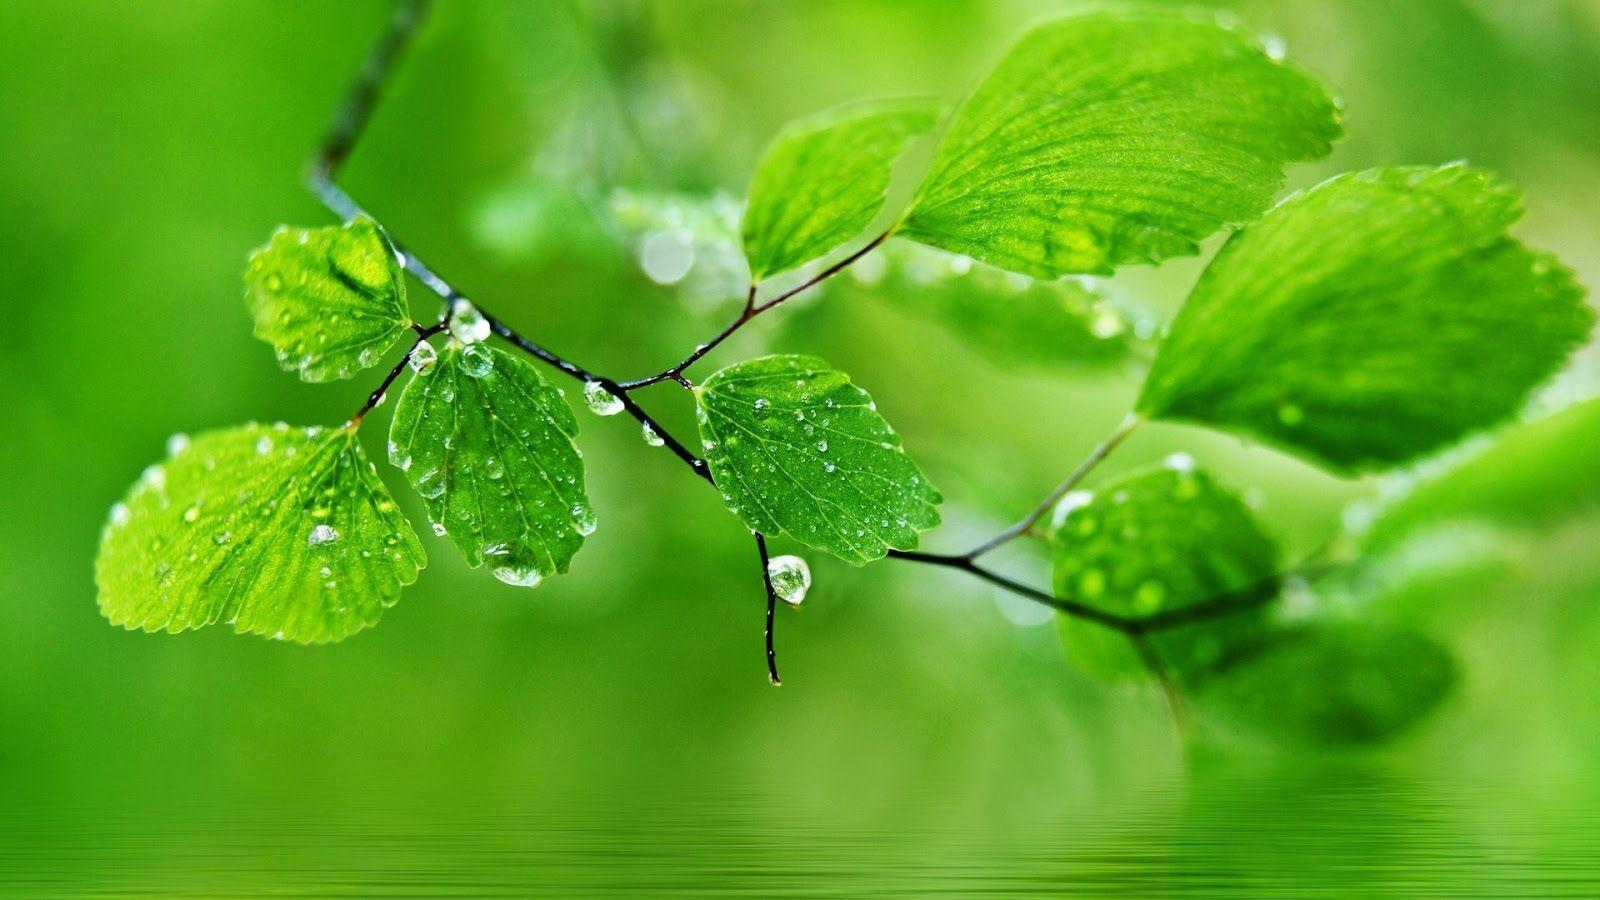 Water Drops On Leaves HD Desktop Wallpapers For Android | Free ...